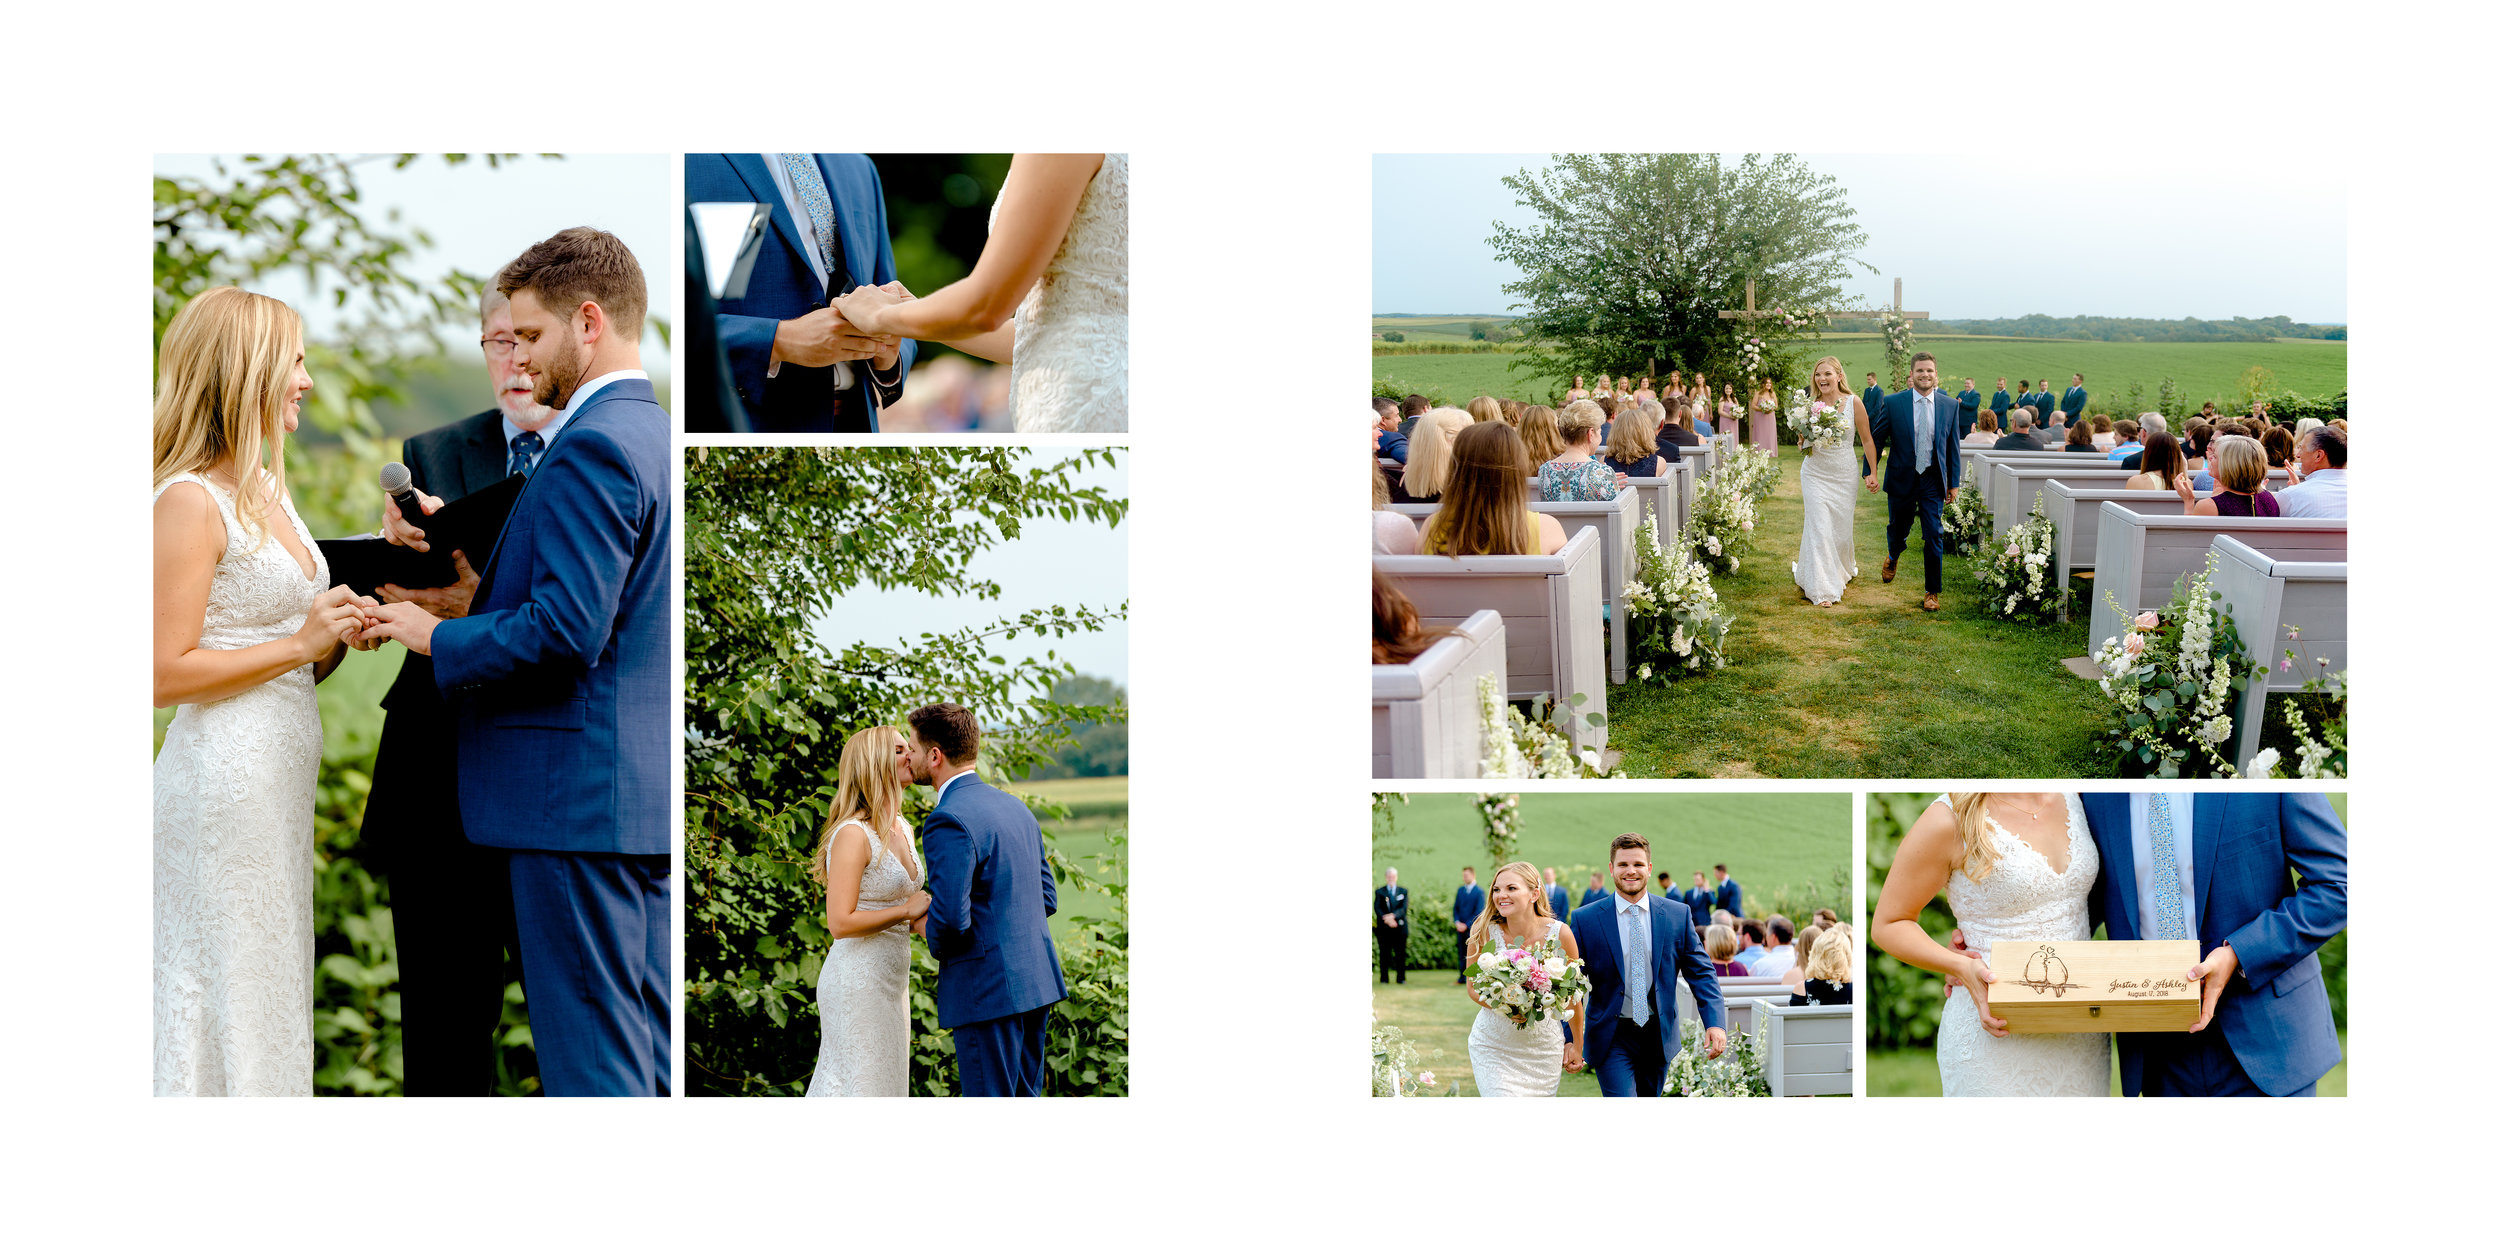 Ashley + Justin - Wedding Album_24.jpg